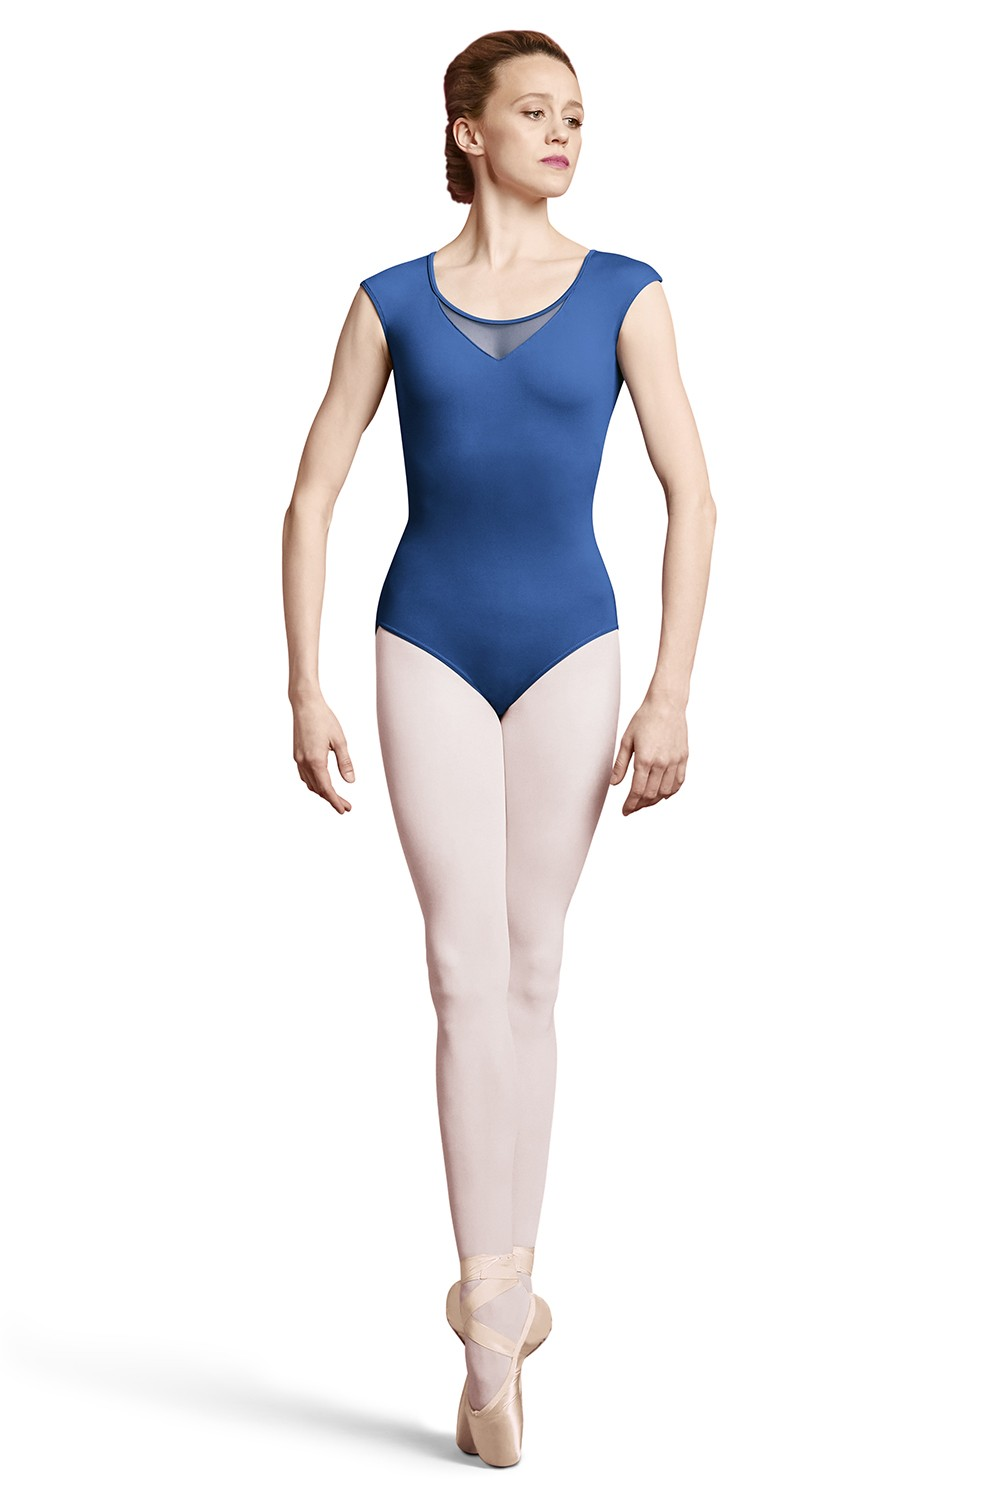 Damocles Women's Dance Leotards